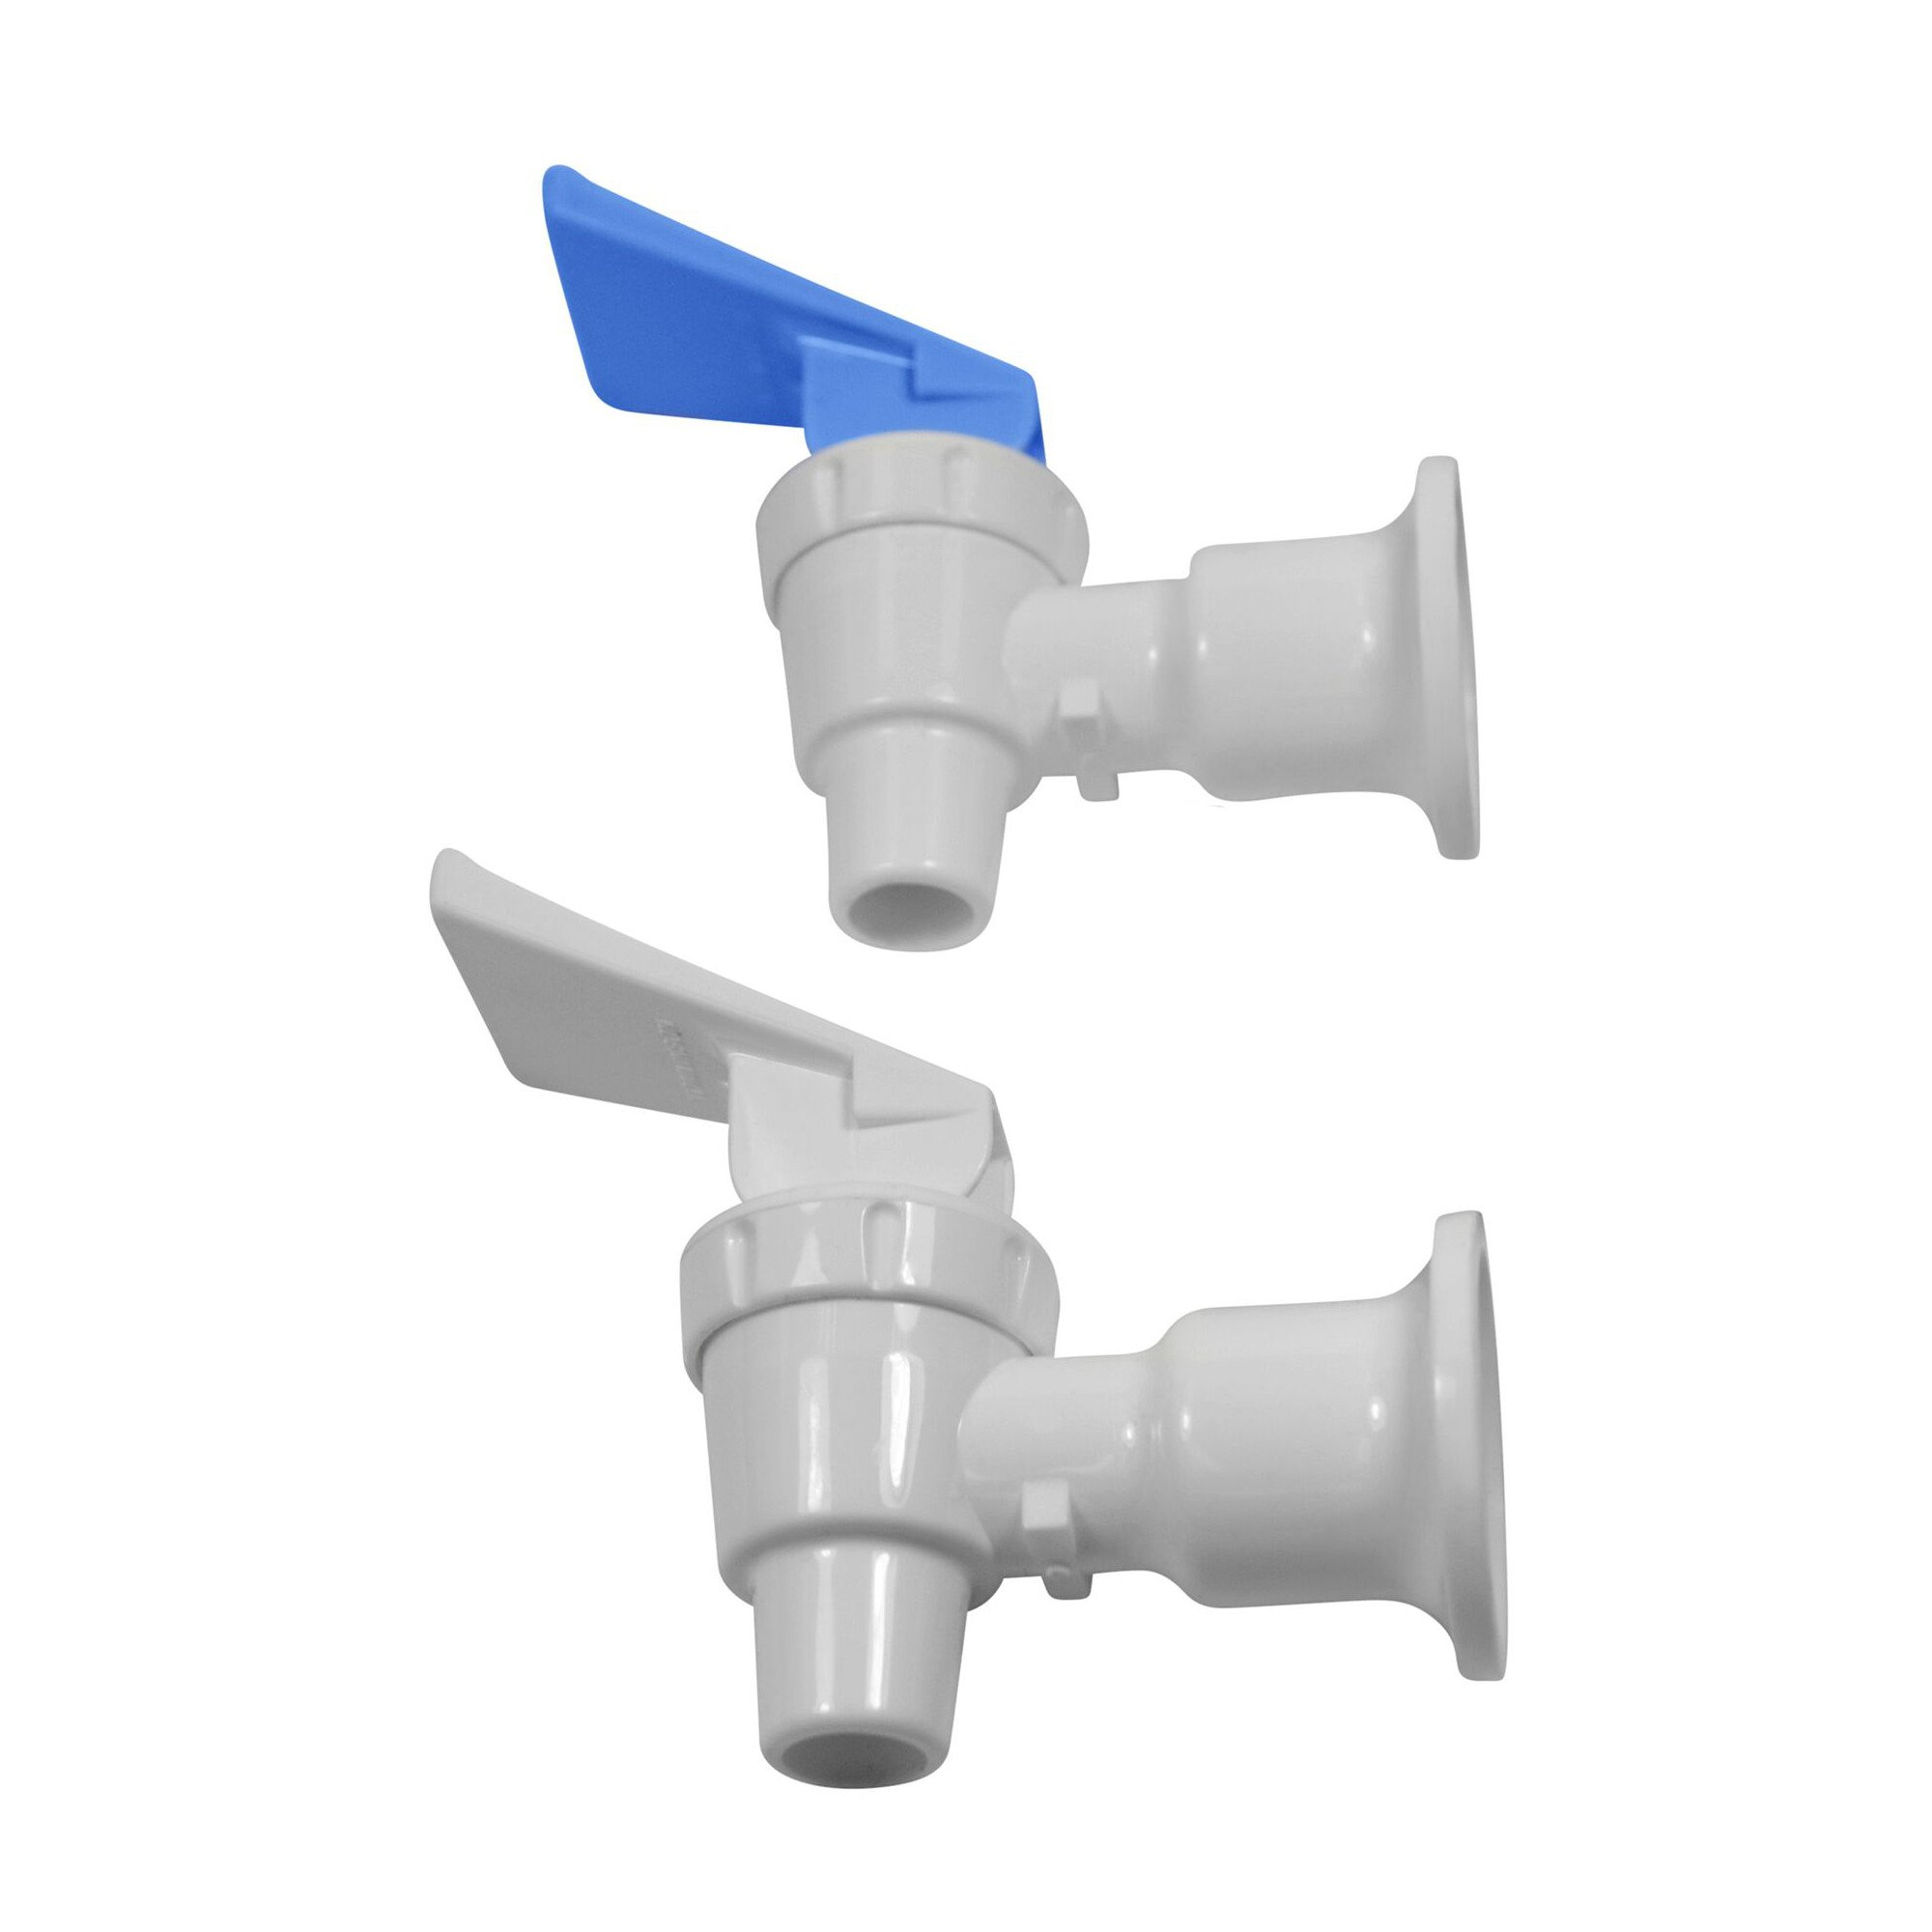 OCSParts WB217 Sunbeam Water Cooler Faucet Tomlinson Handle Combo Pack of 2